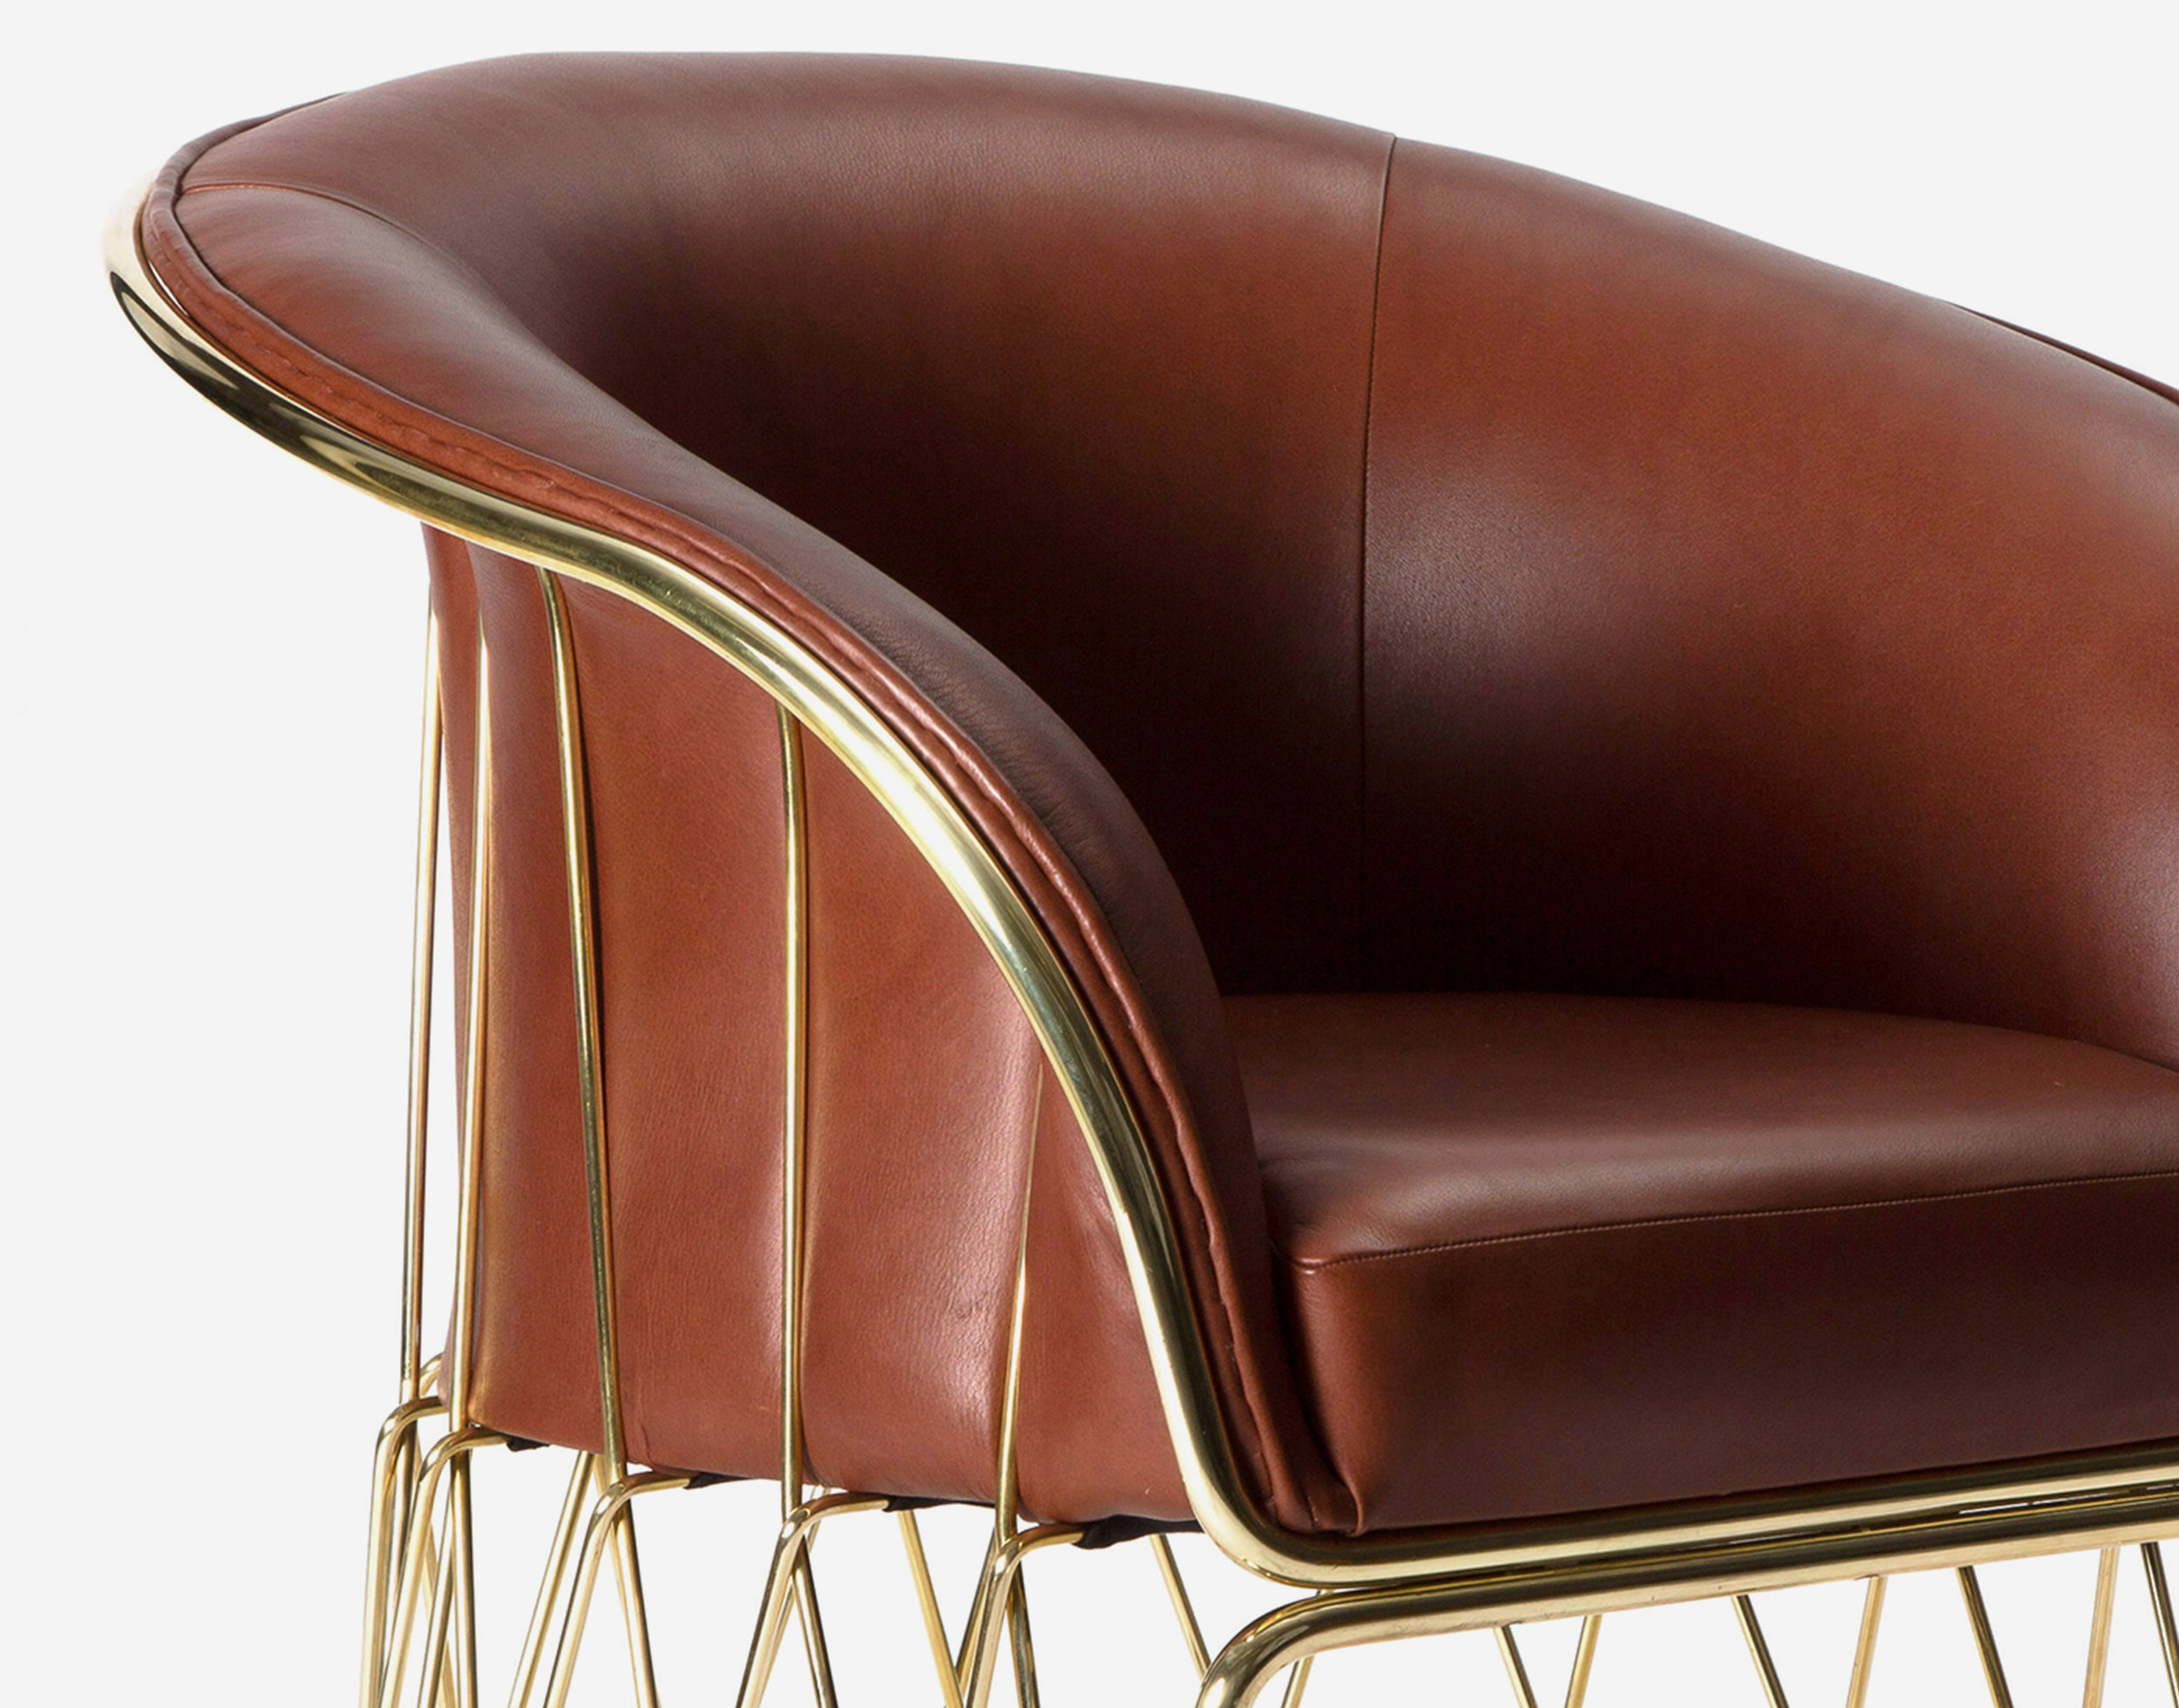 Luteca_PRV_Equipal-Chair_Brown-Leather-Polished-Brass_FP-Detail-W.jpg